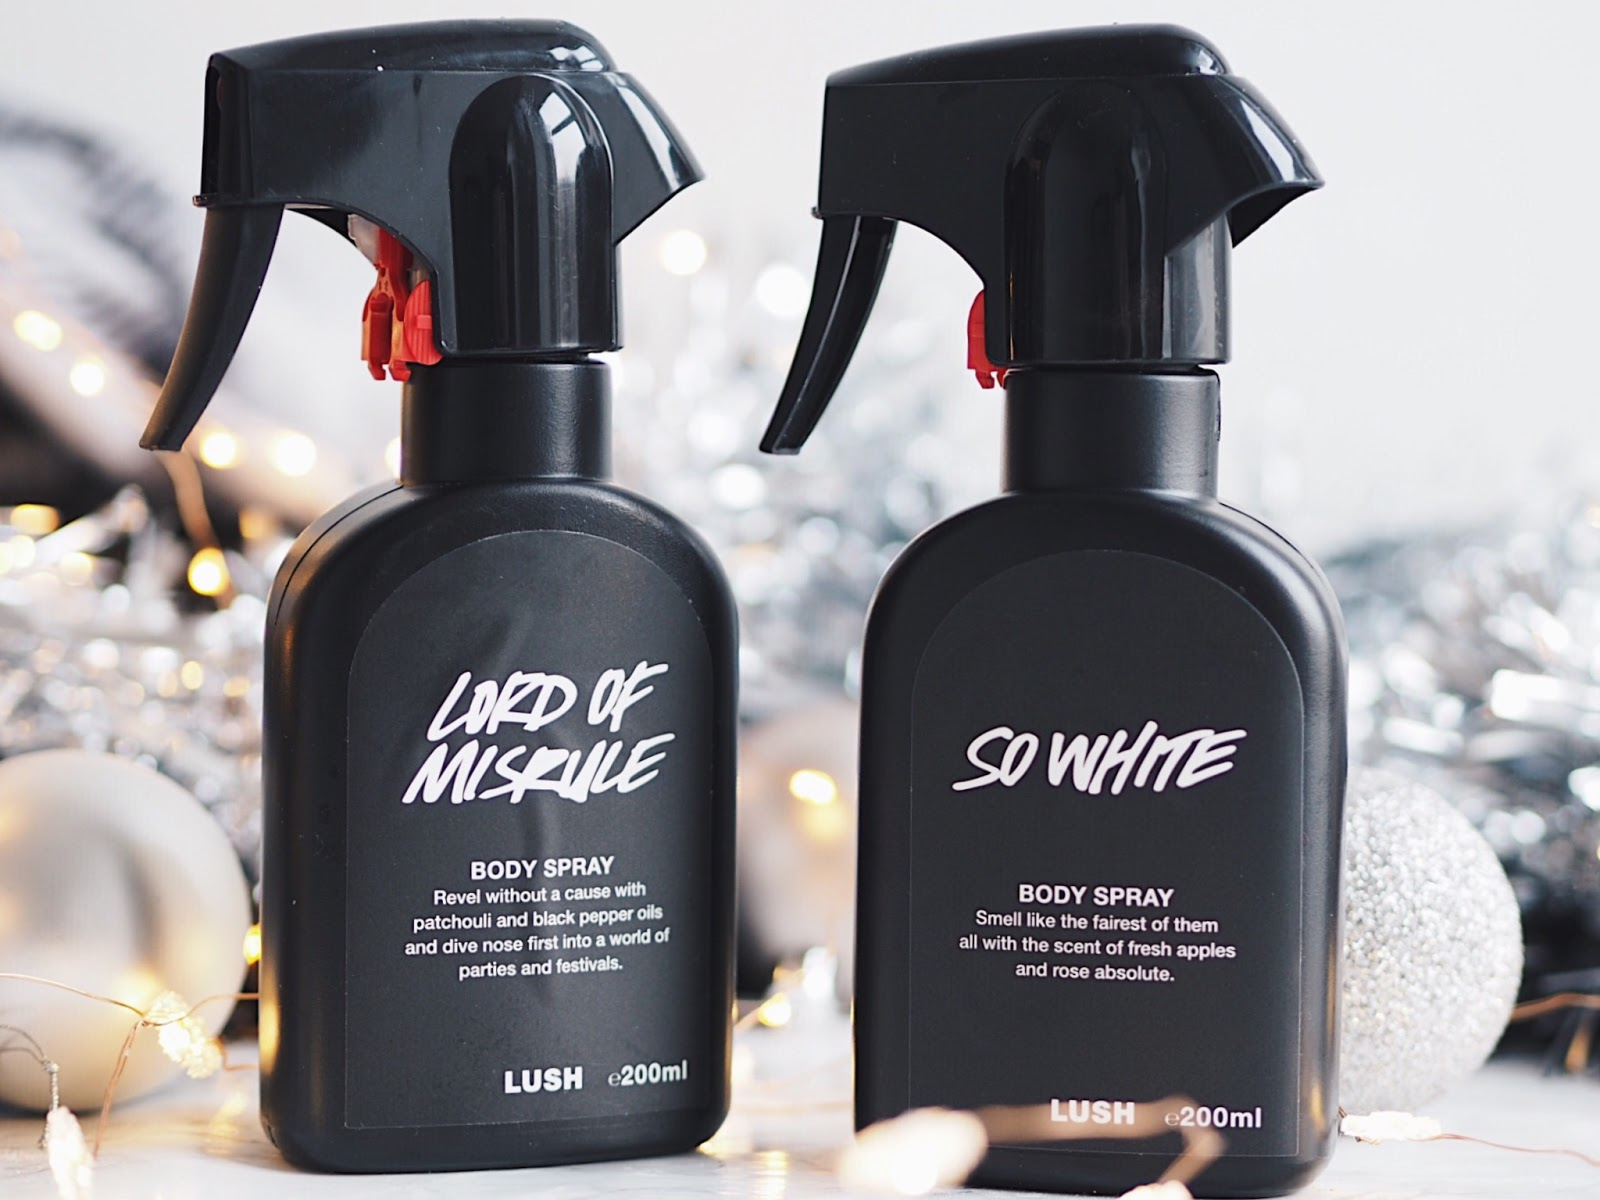 lush christmas 2017 body sprays lord of misrule so white